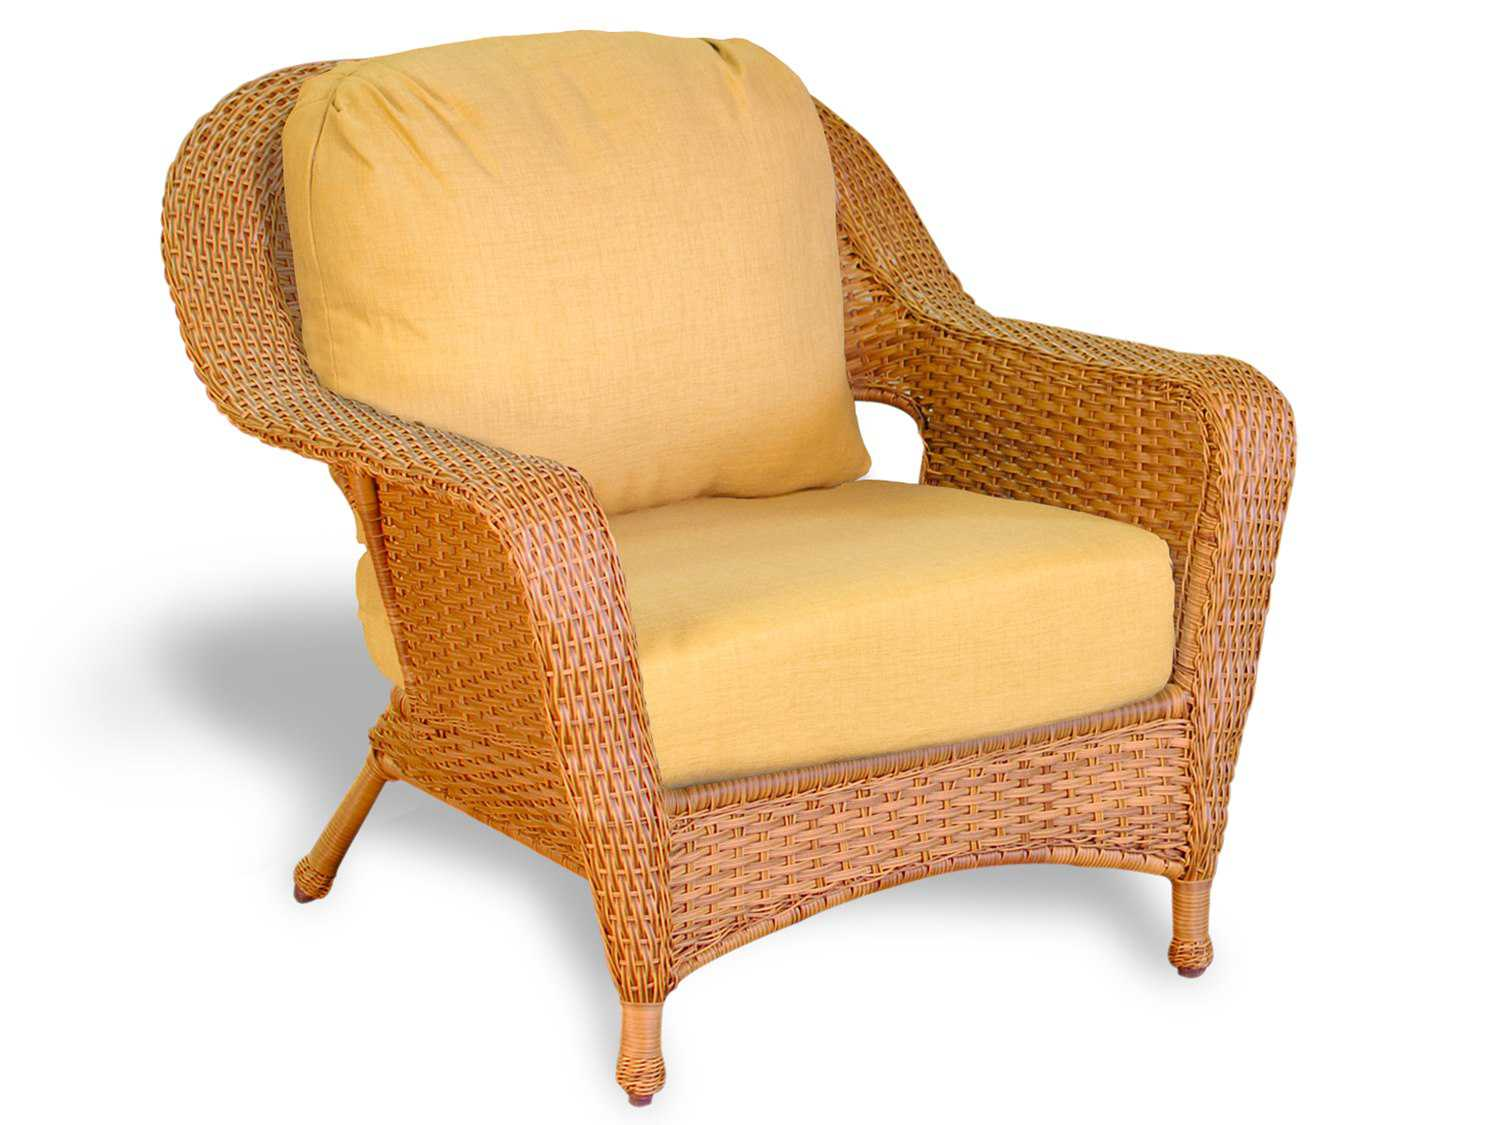 Wicker Patio Chair Tortuga Outdoor Lexington Wicker Cushion Club Chair Lex C1